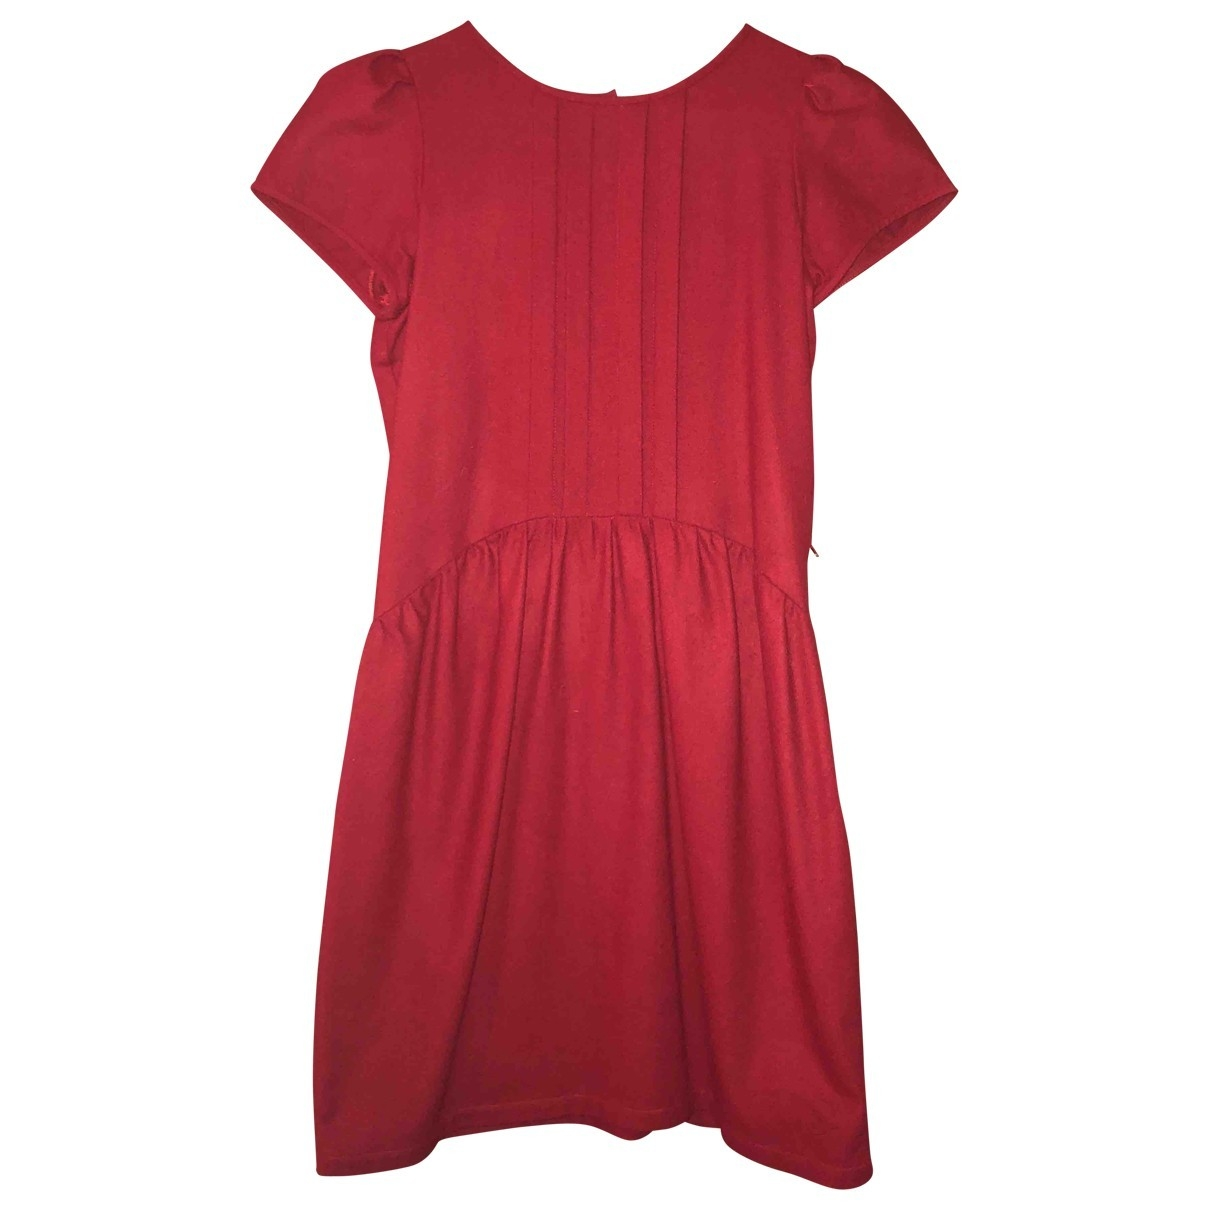 Sessun \N Red Wool dress for Women S International